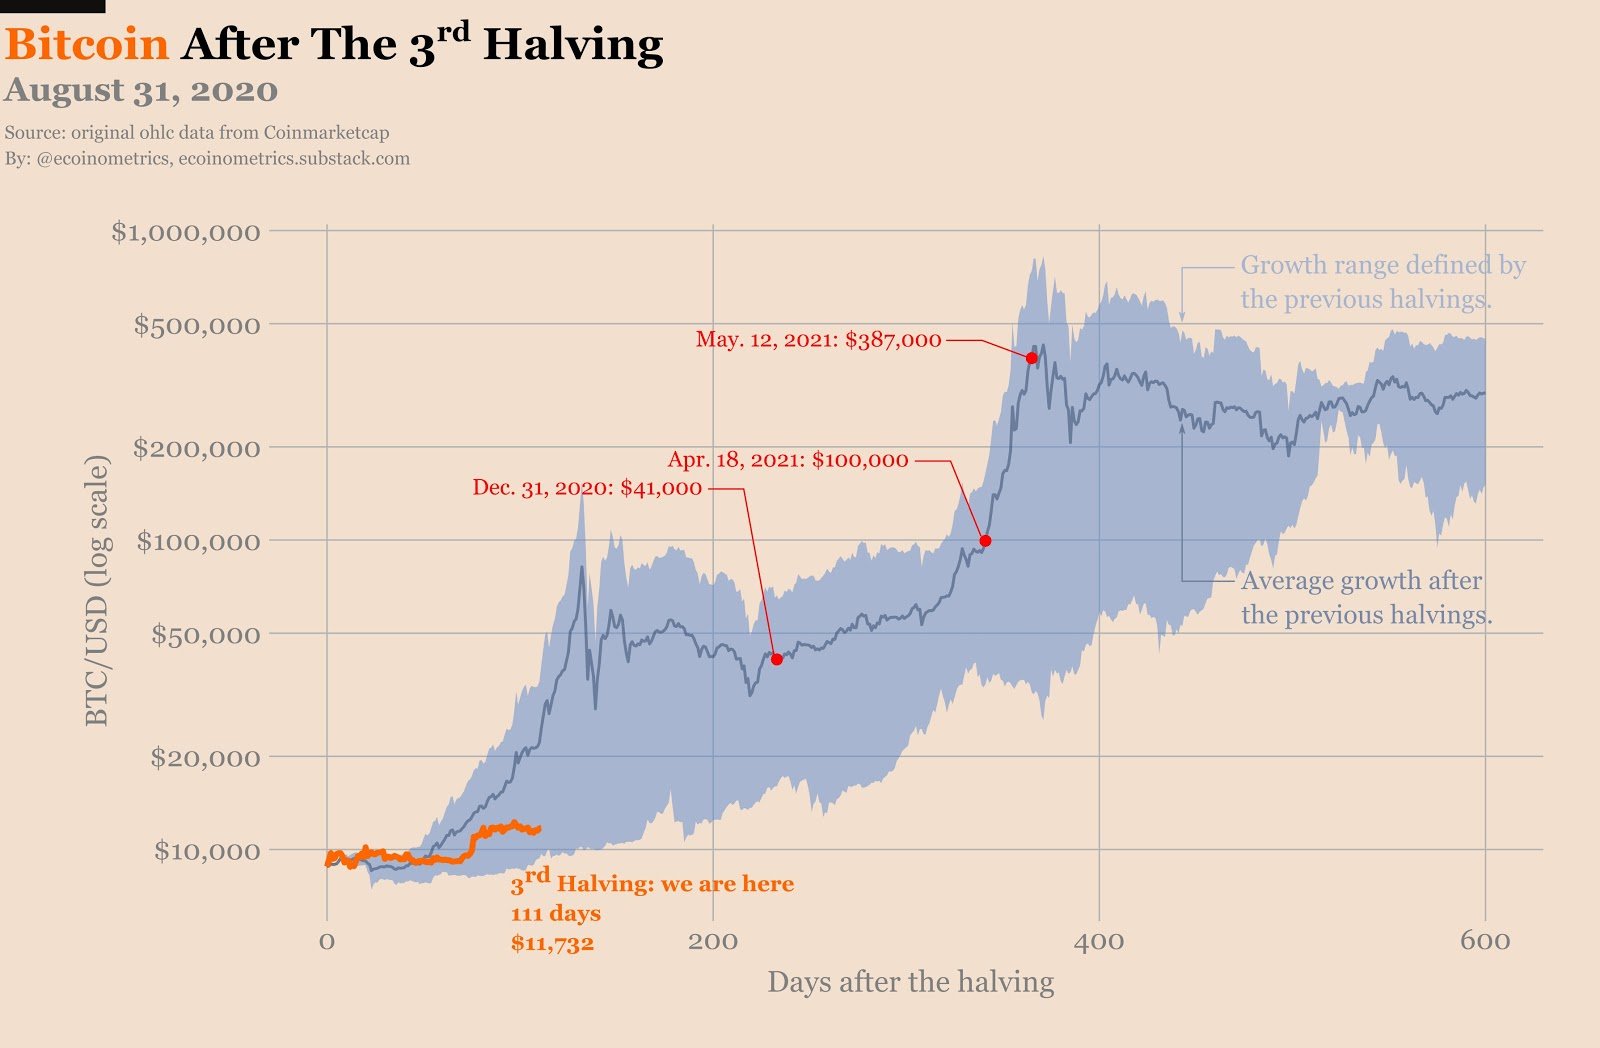 Bitcoin price forecast post 2020 halving